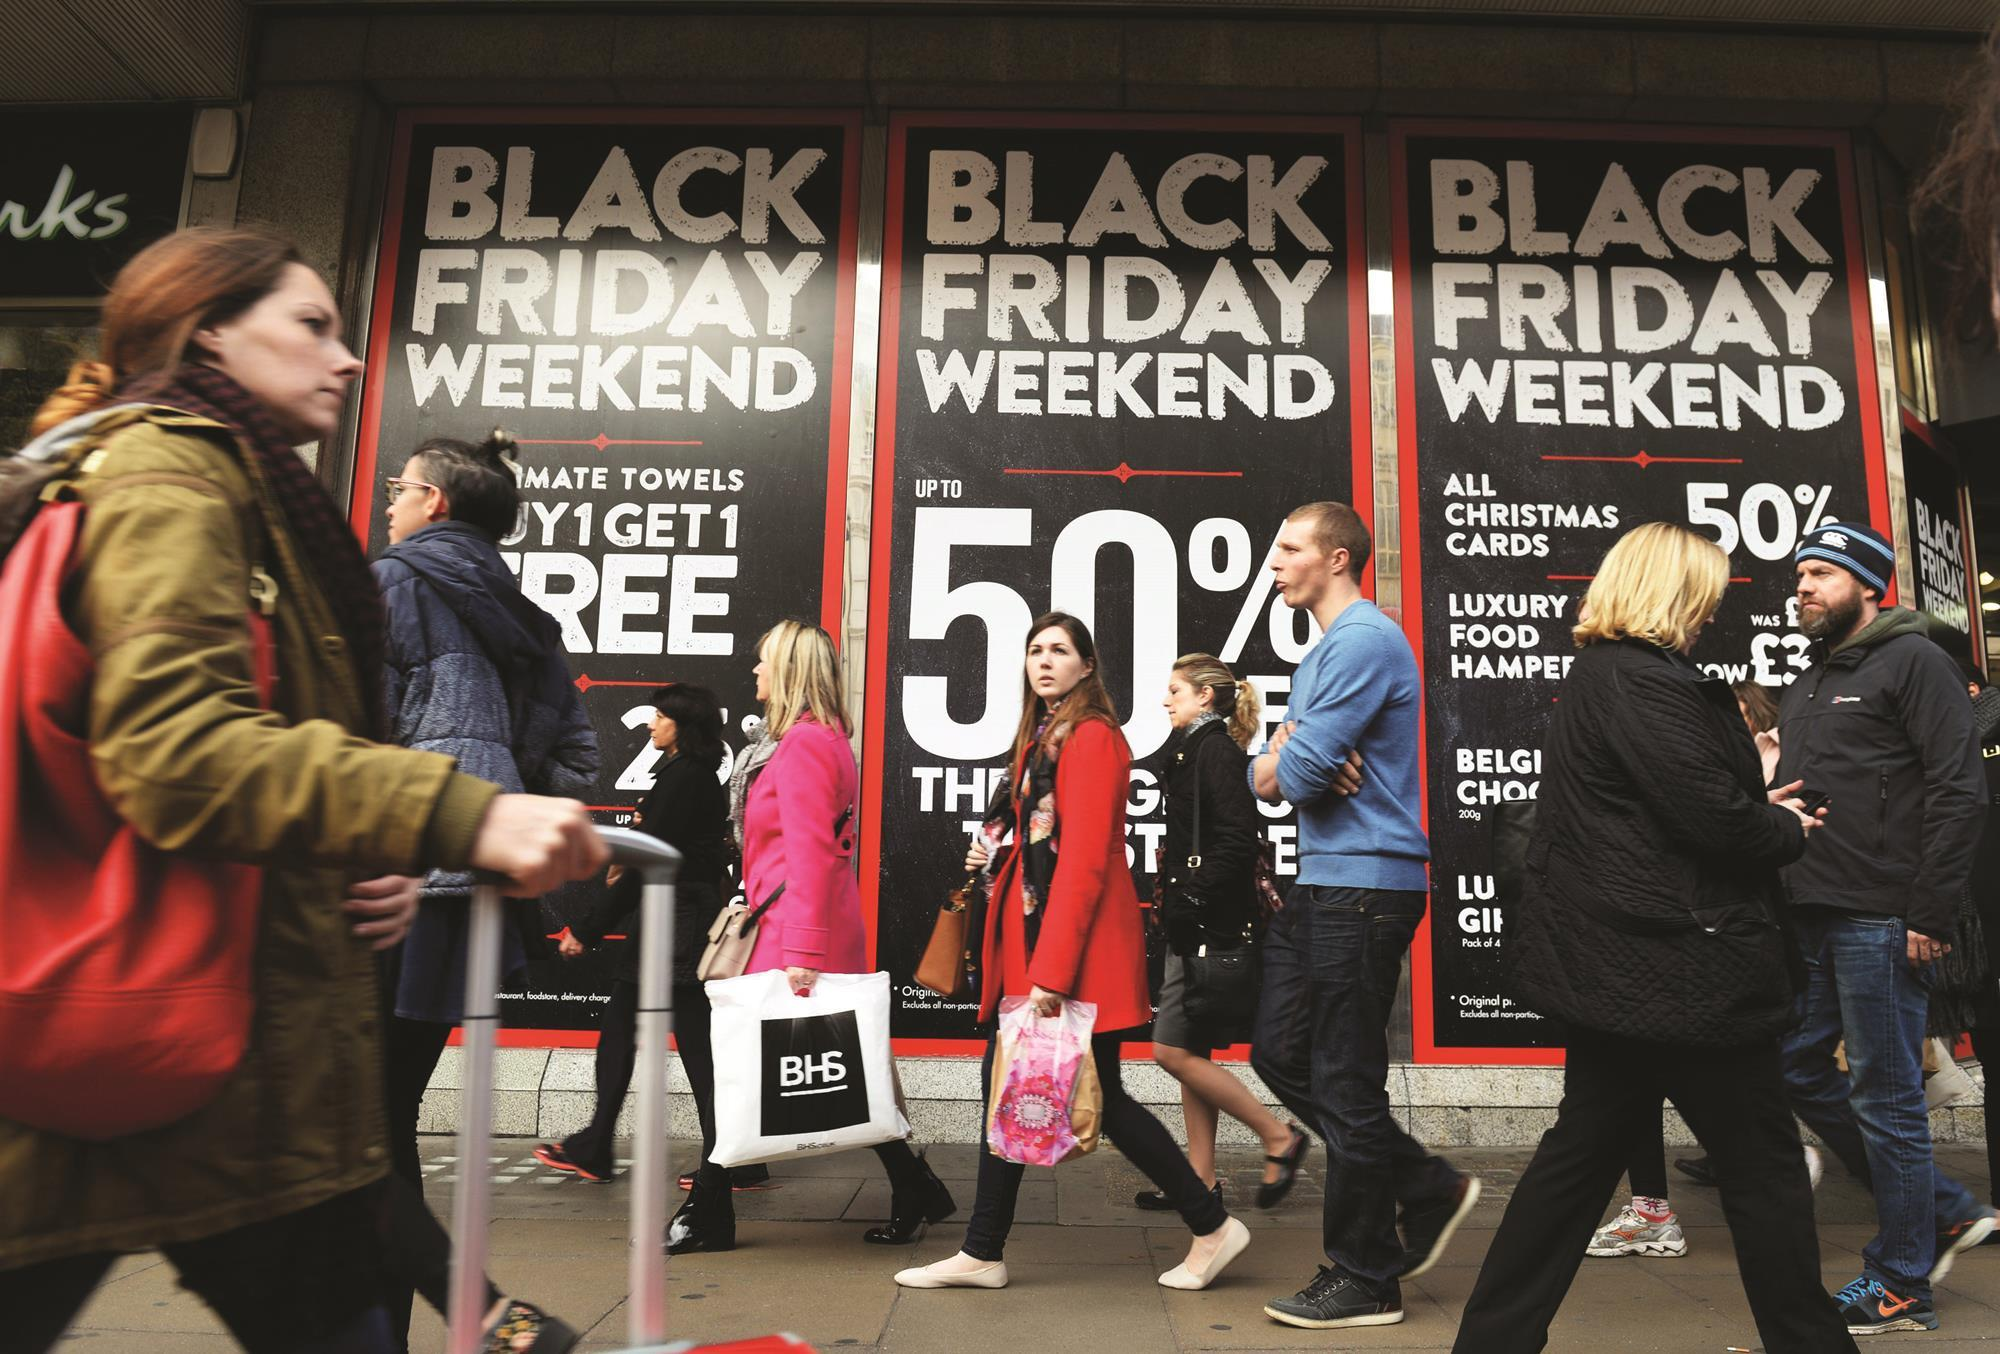 Black Friday may be a nightmare before Christmas for retailers ...